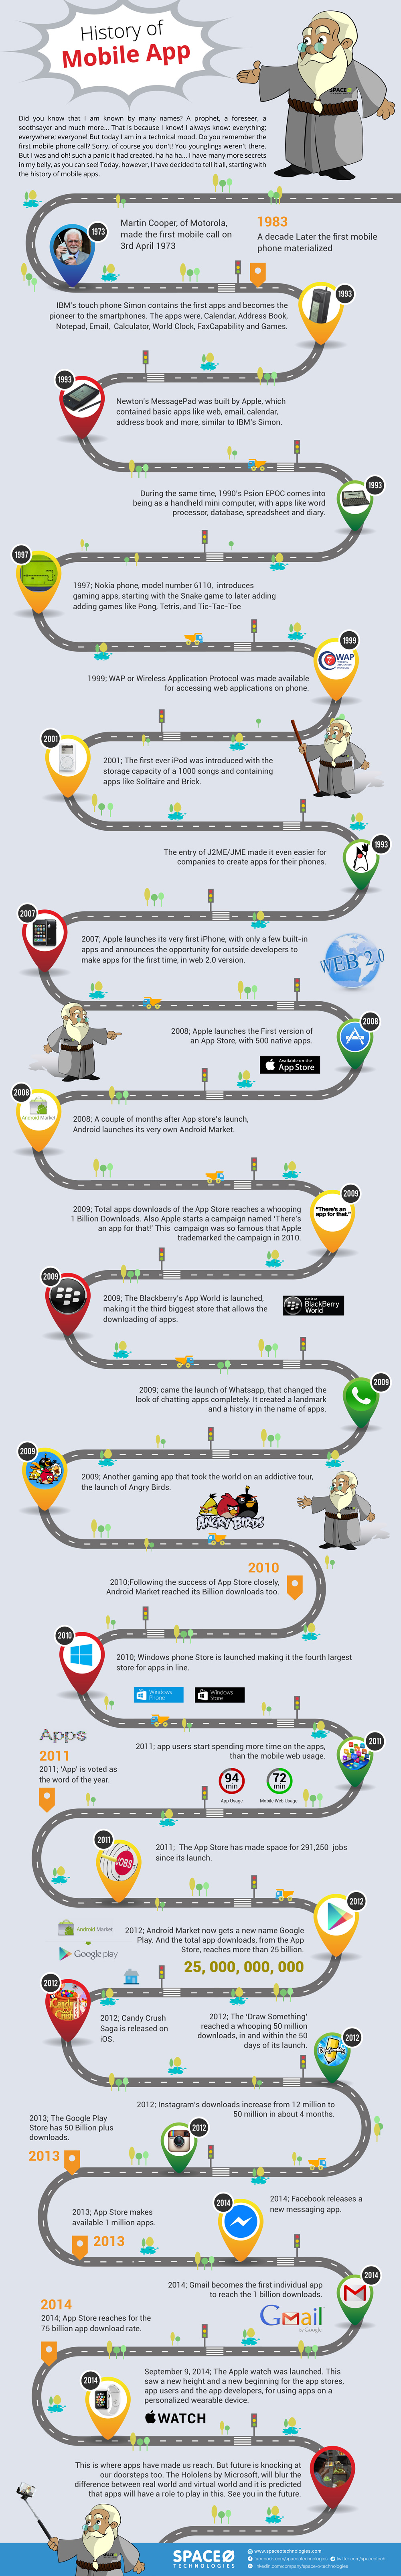 History-Of-Mobile-App